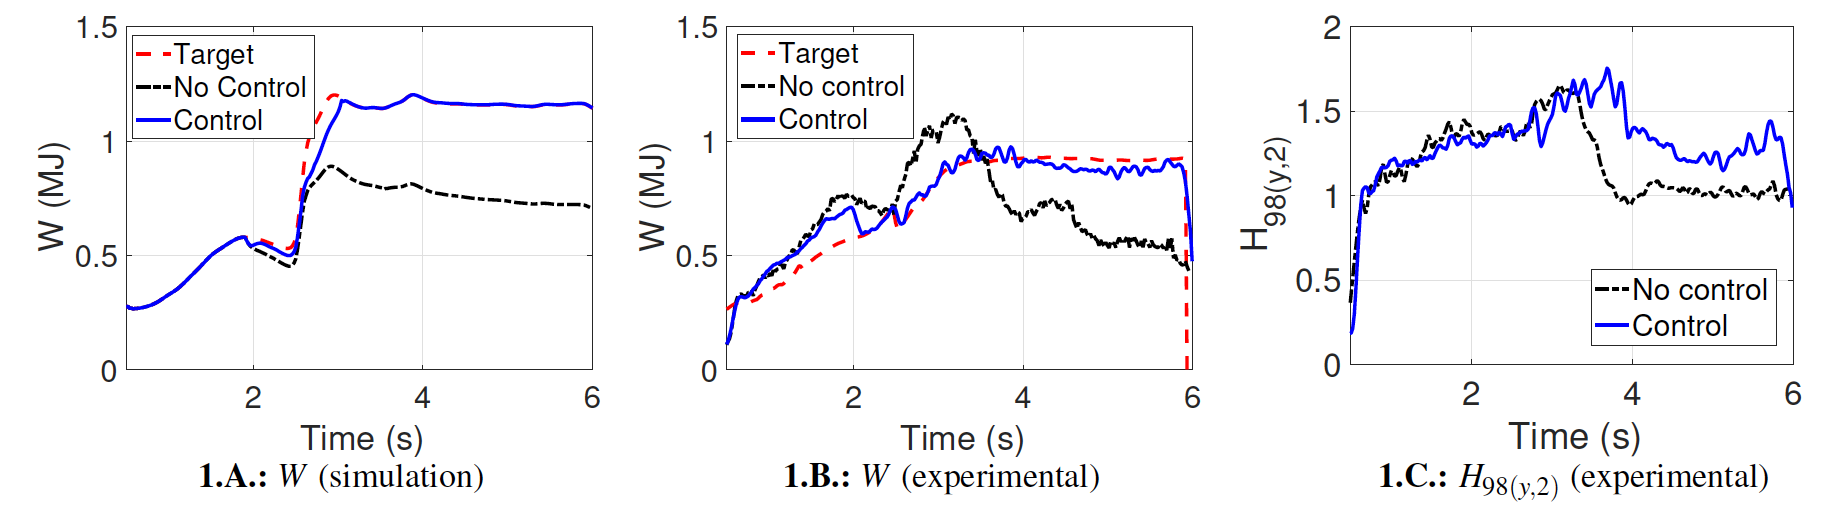 Improvement of the plasma performance in DIII-D in feedback (blue, shot 180397) vs no feedback (black, shot 180390) under the presence of NTMs in a steady-state, high-$q_{min}$ scenario. Good qualitative agreement is found between simulation results (Fig. 1.A, obtained using COTSIM) and experimental results (Fig. 1.B). The confinement factor, $H_{98(y,2)}$, is increased by about +30% when feedback control with NTM suppression techniques are employed (Fig. 1.C).